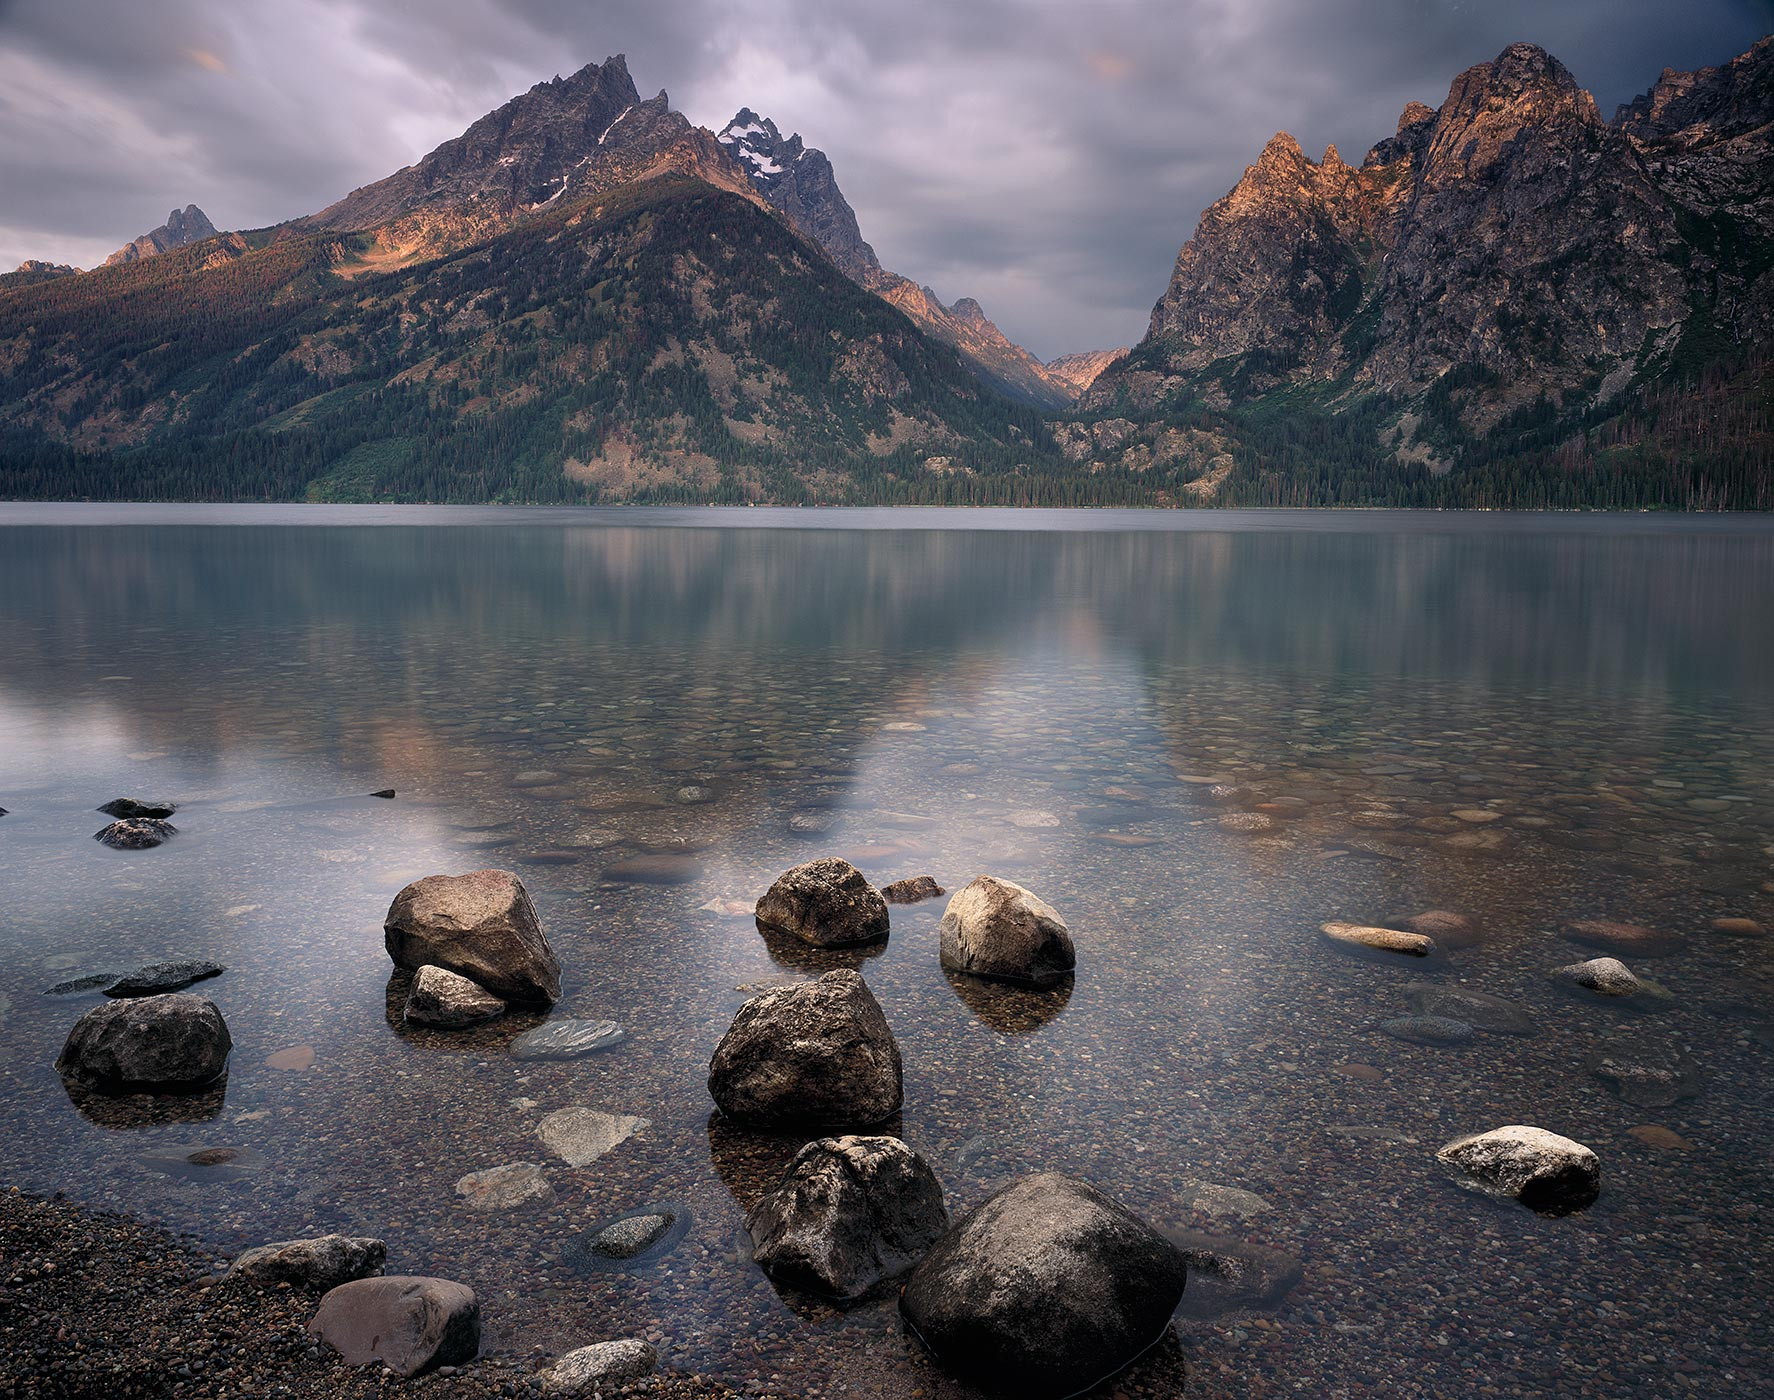 510 Cloud Break Over Jenny Lake, Grand Teton National Park, Wyoming